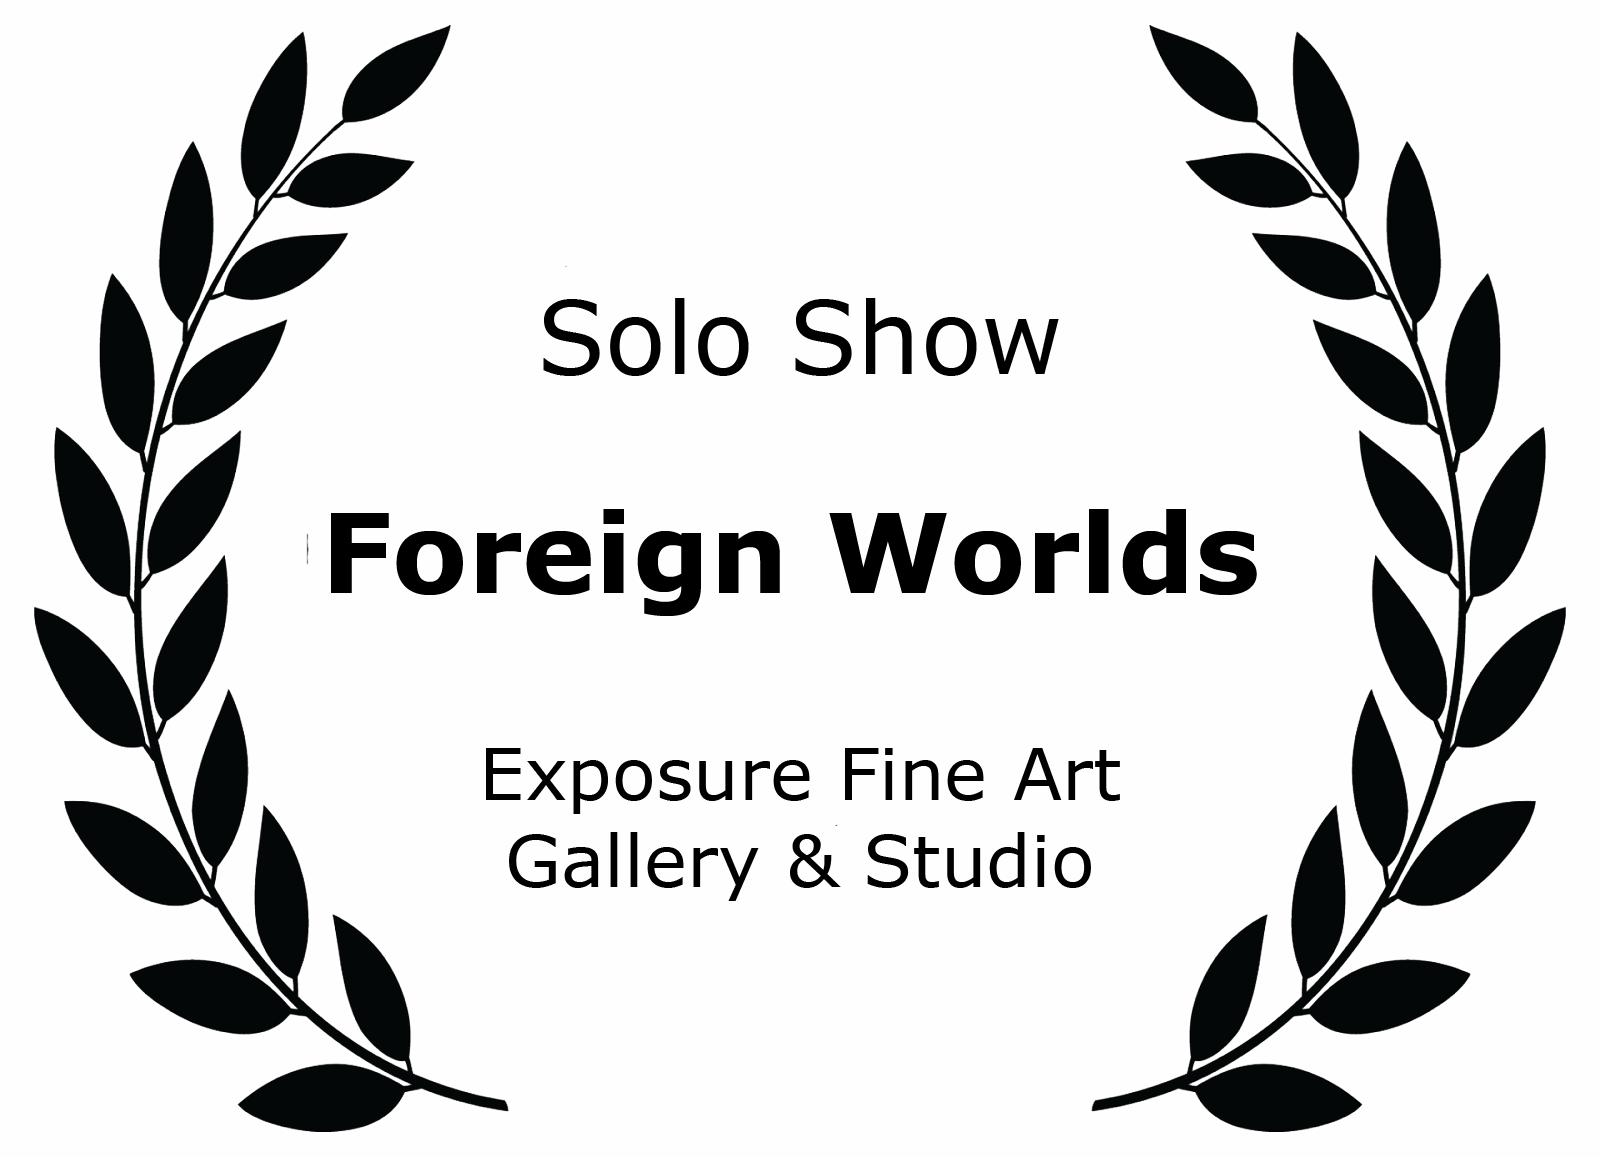 Solo Show Foreign Worlds Exposure Fine Art Gallery & Studio